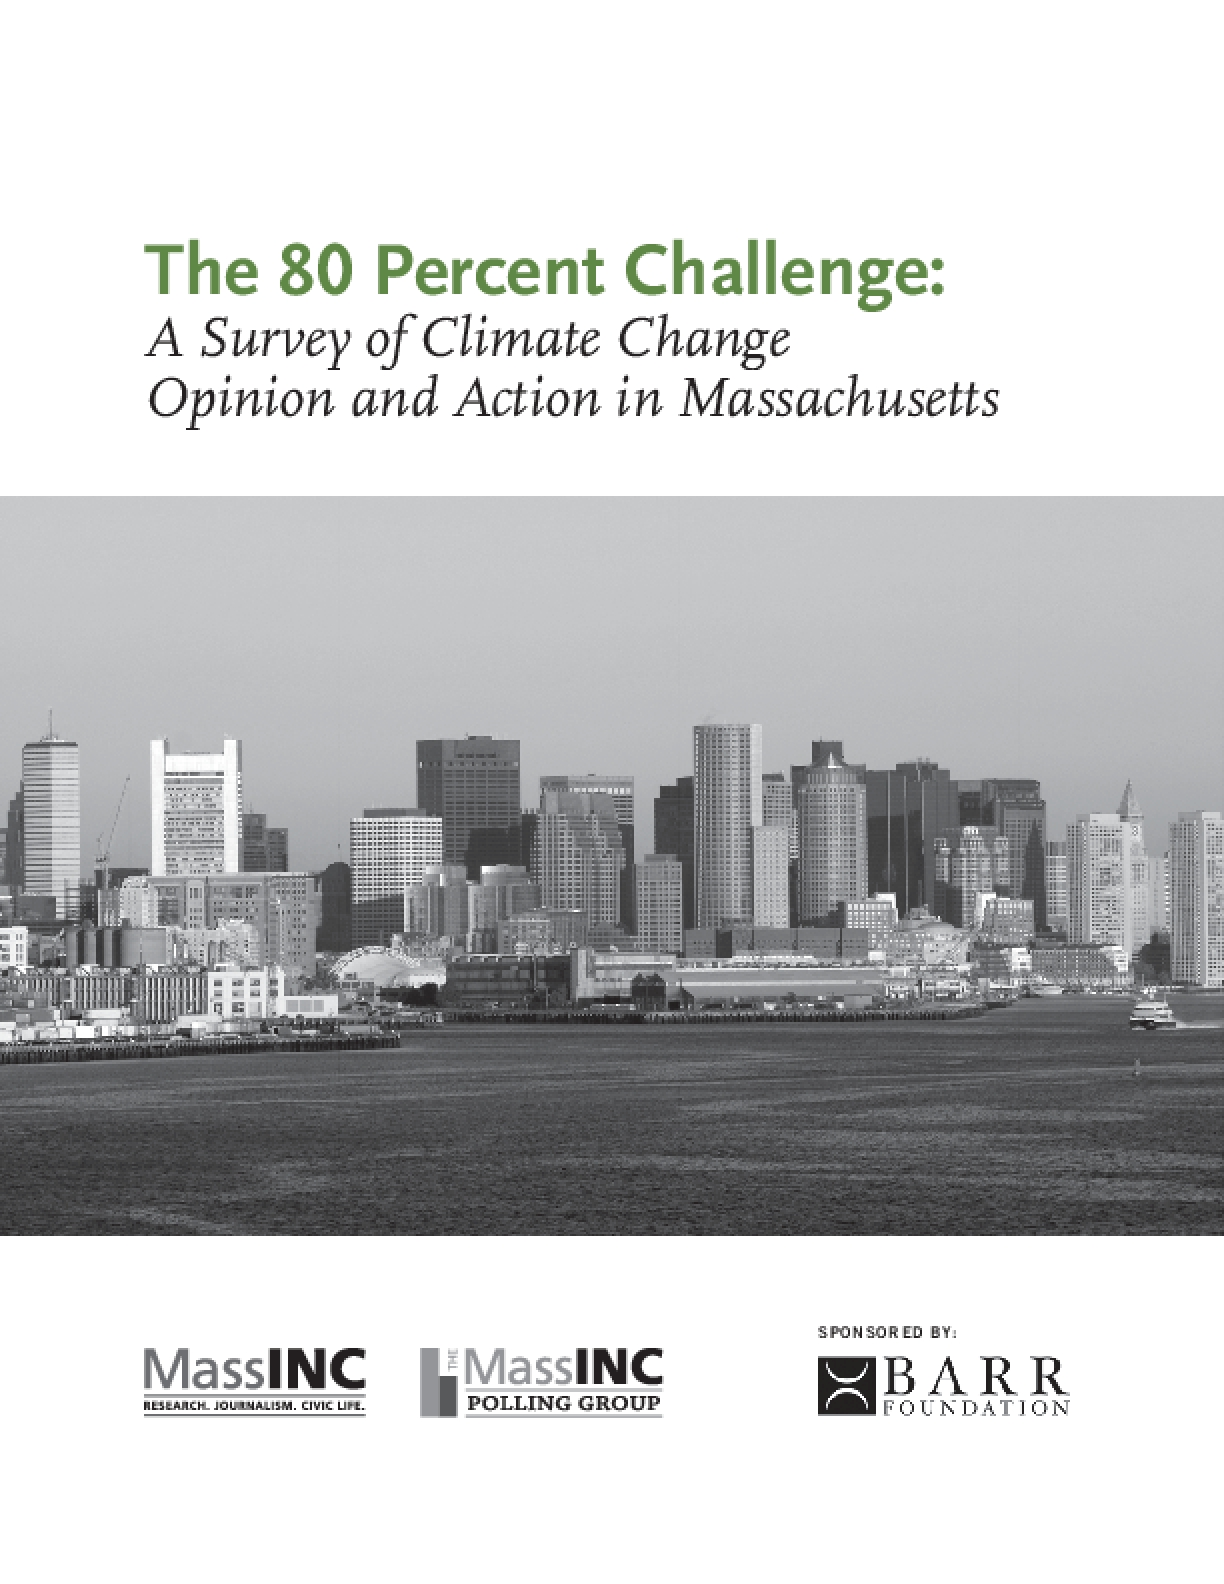 The 80 Percent Challenge: A Survey of Climate Change Opinion and Action in Massachusetts